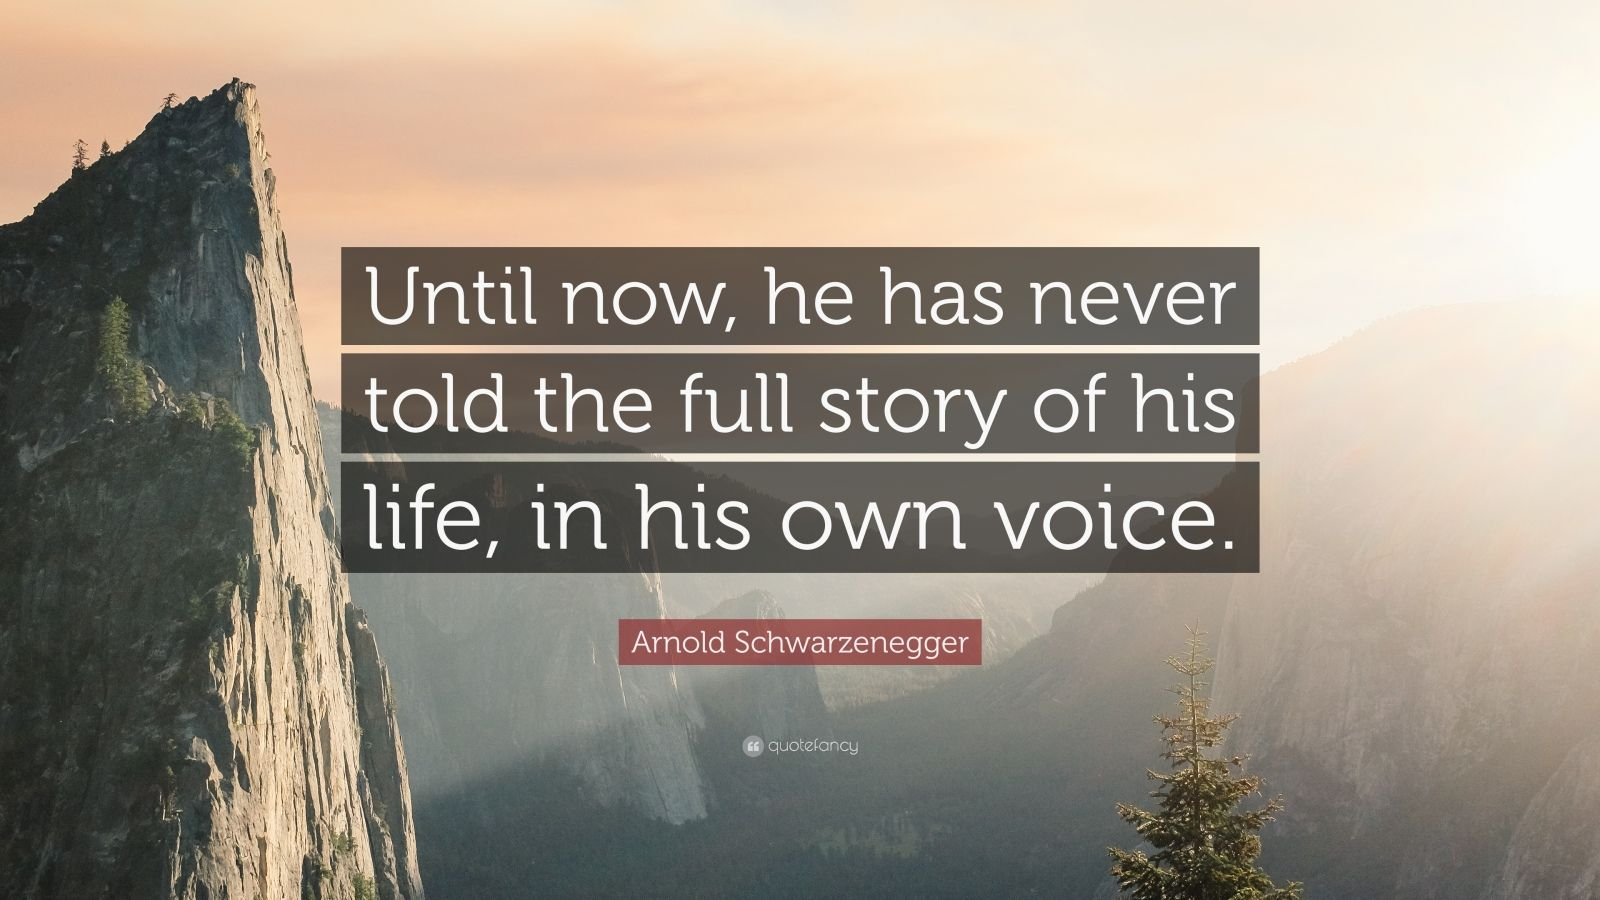 """Arnold Schwarzenegger Quote: """"Until now, he has never told the full story of his life, in his own voice."""""""